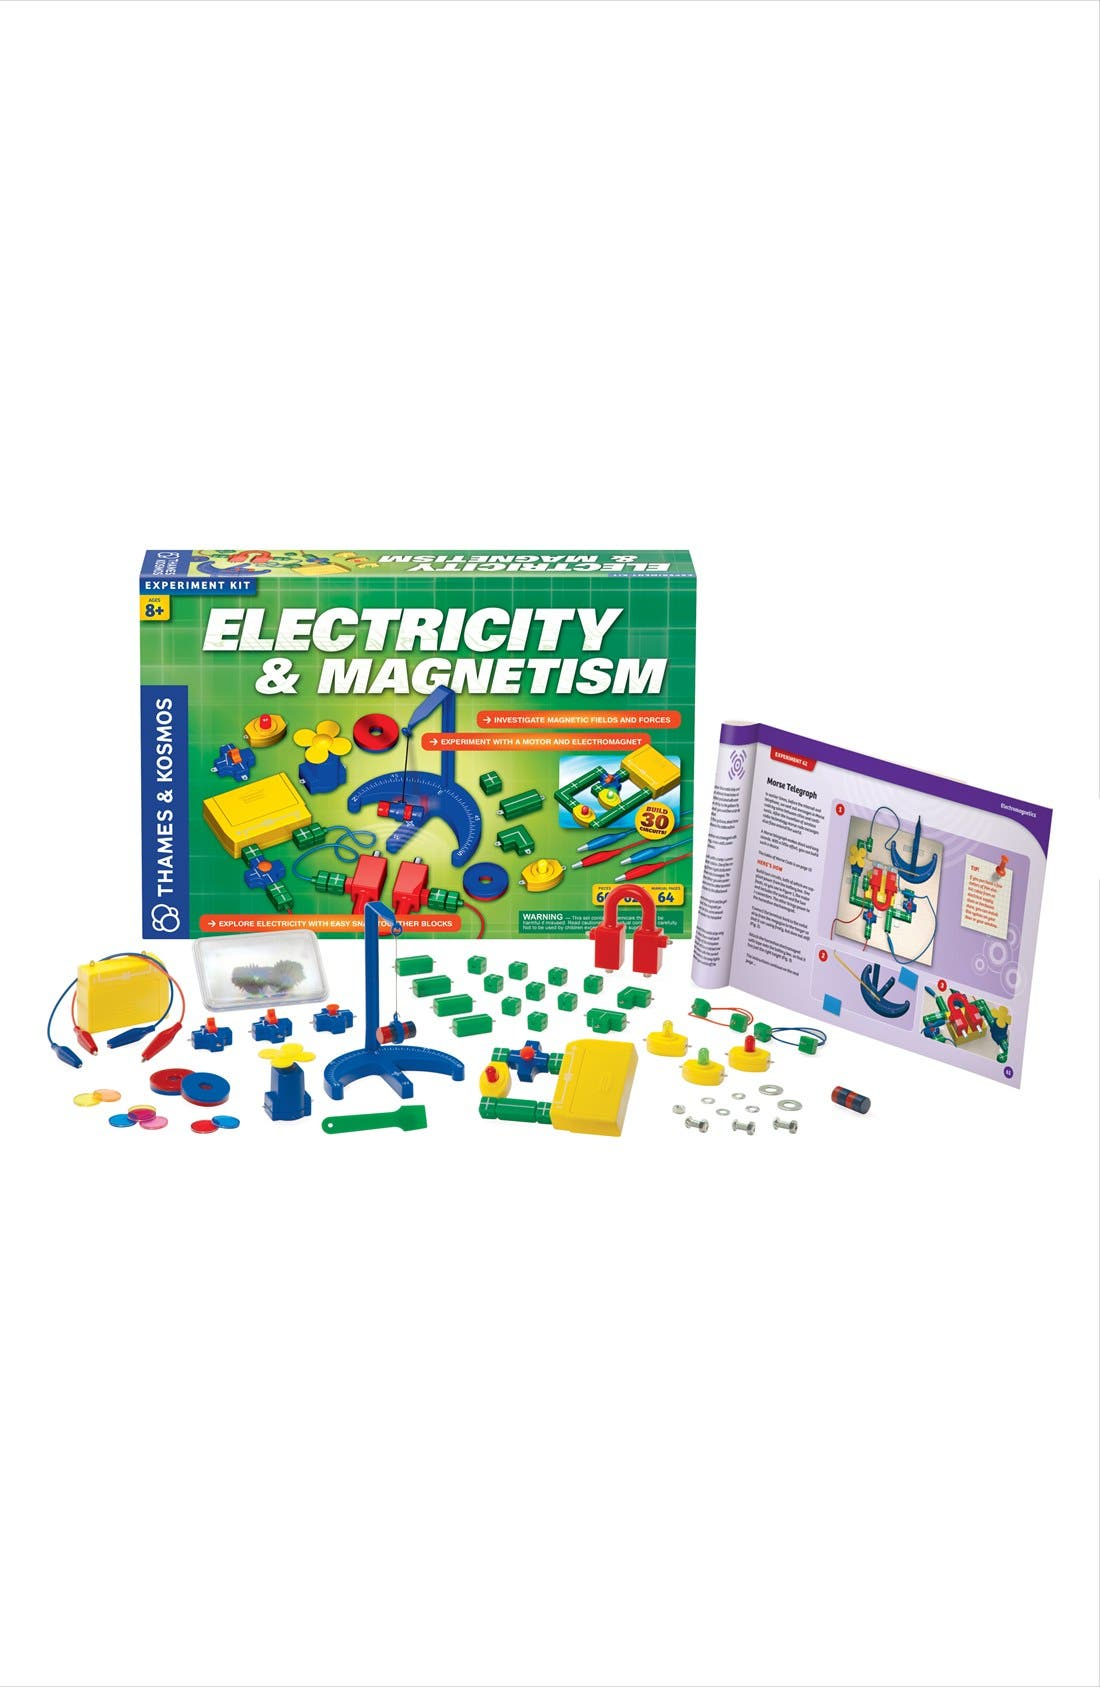 Thames & Kosmos 'Electricity & Magnetism' Experiment Kit